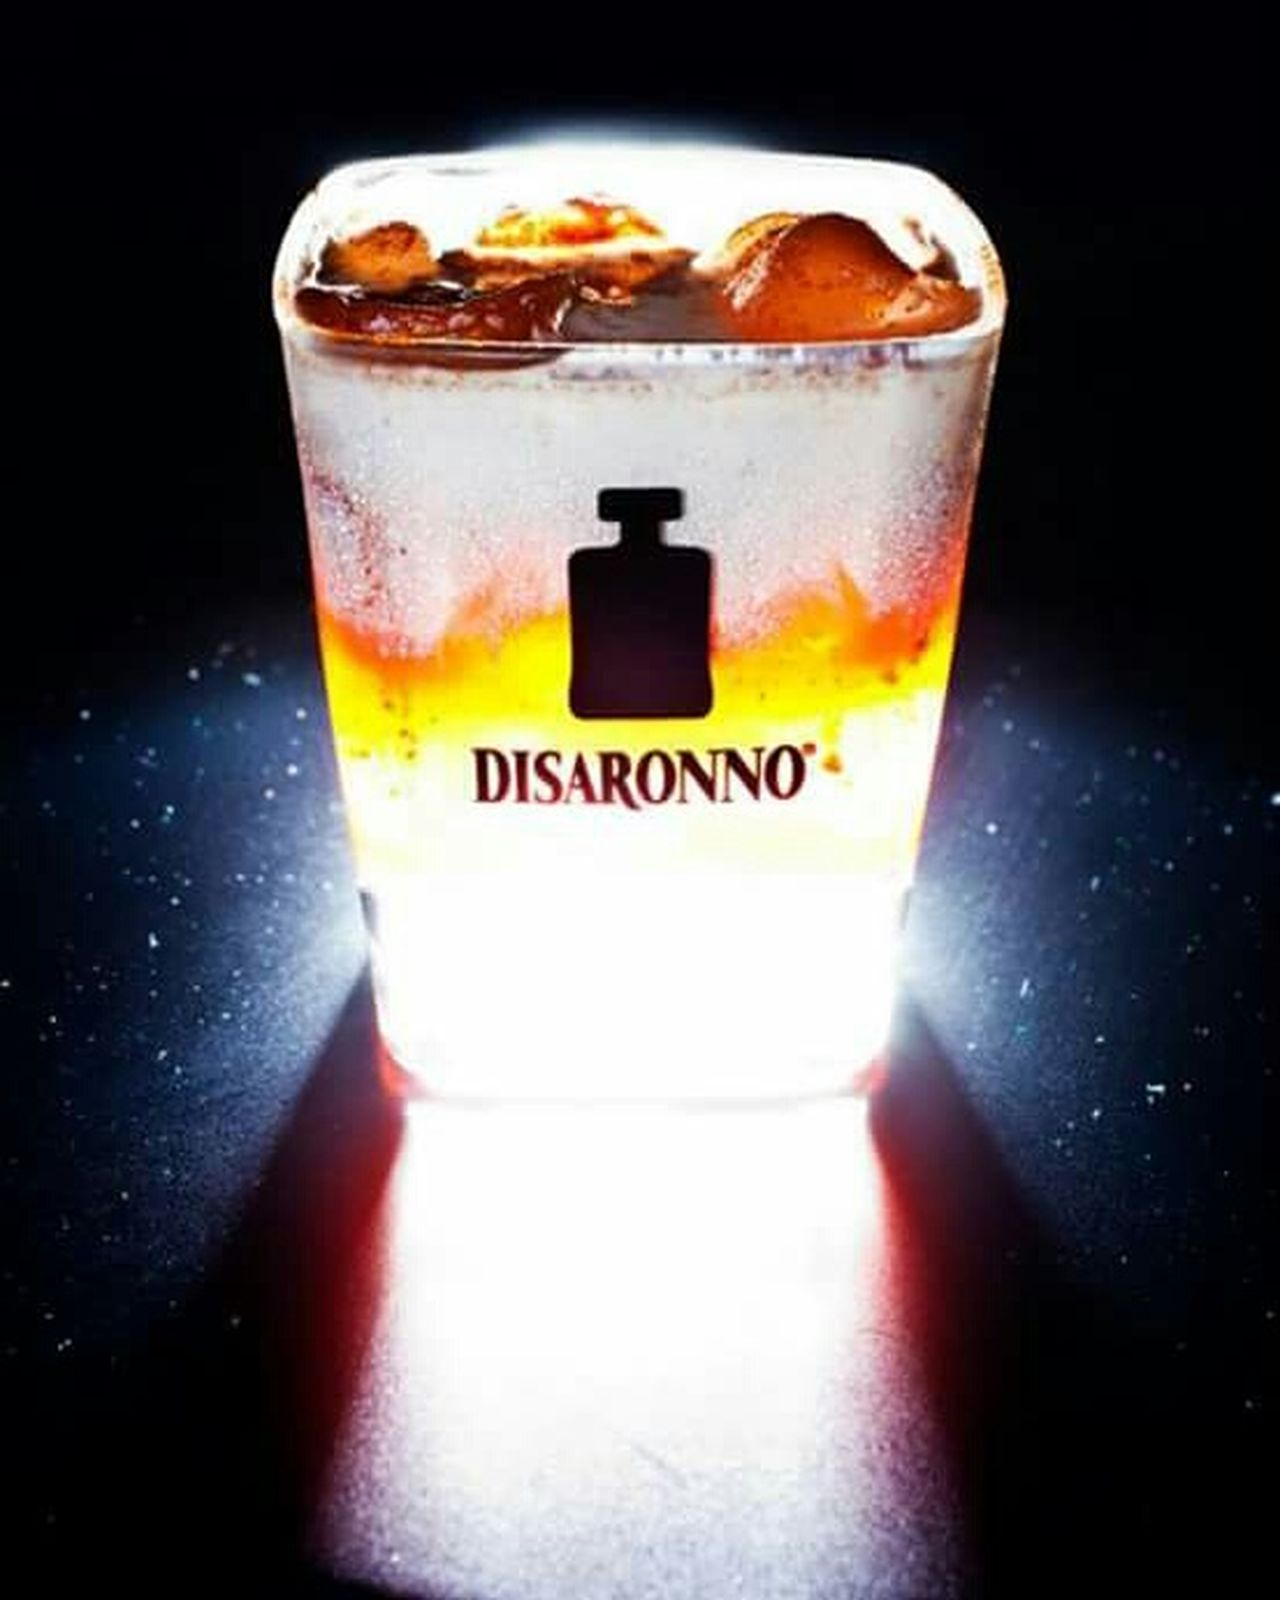 Visual Feast Drink Drinking Glass Ice Cube Cold Temperature Food And Drink Refreshment No People Close-up Cocktail Indoors  Alcohol Space Black Background Freshness Day Still Life Photograpy Preview Aperitivo  Disaronnomixingstar Disaronno😈